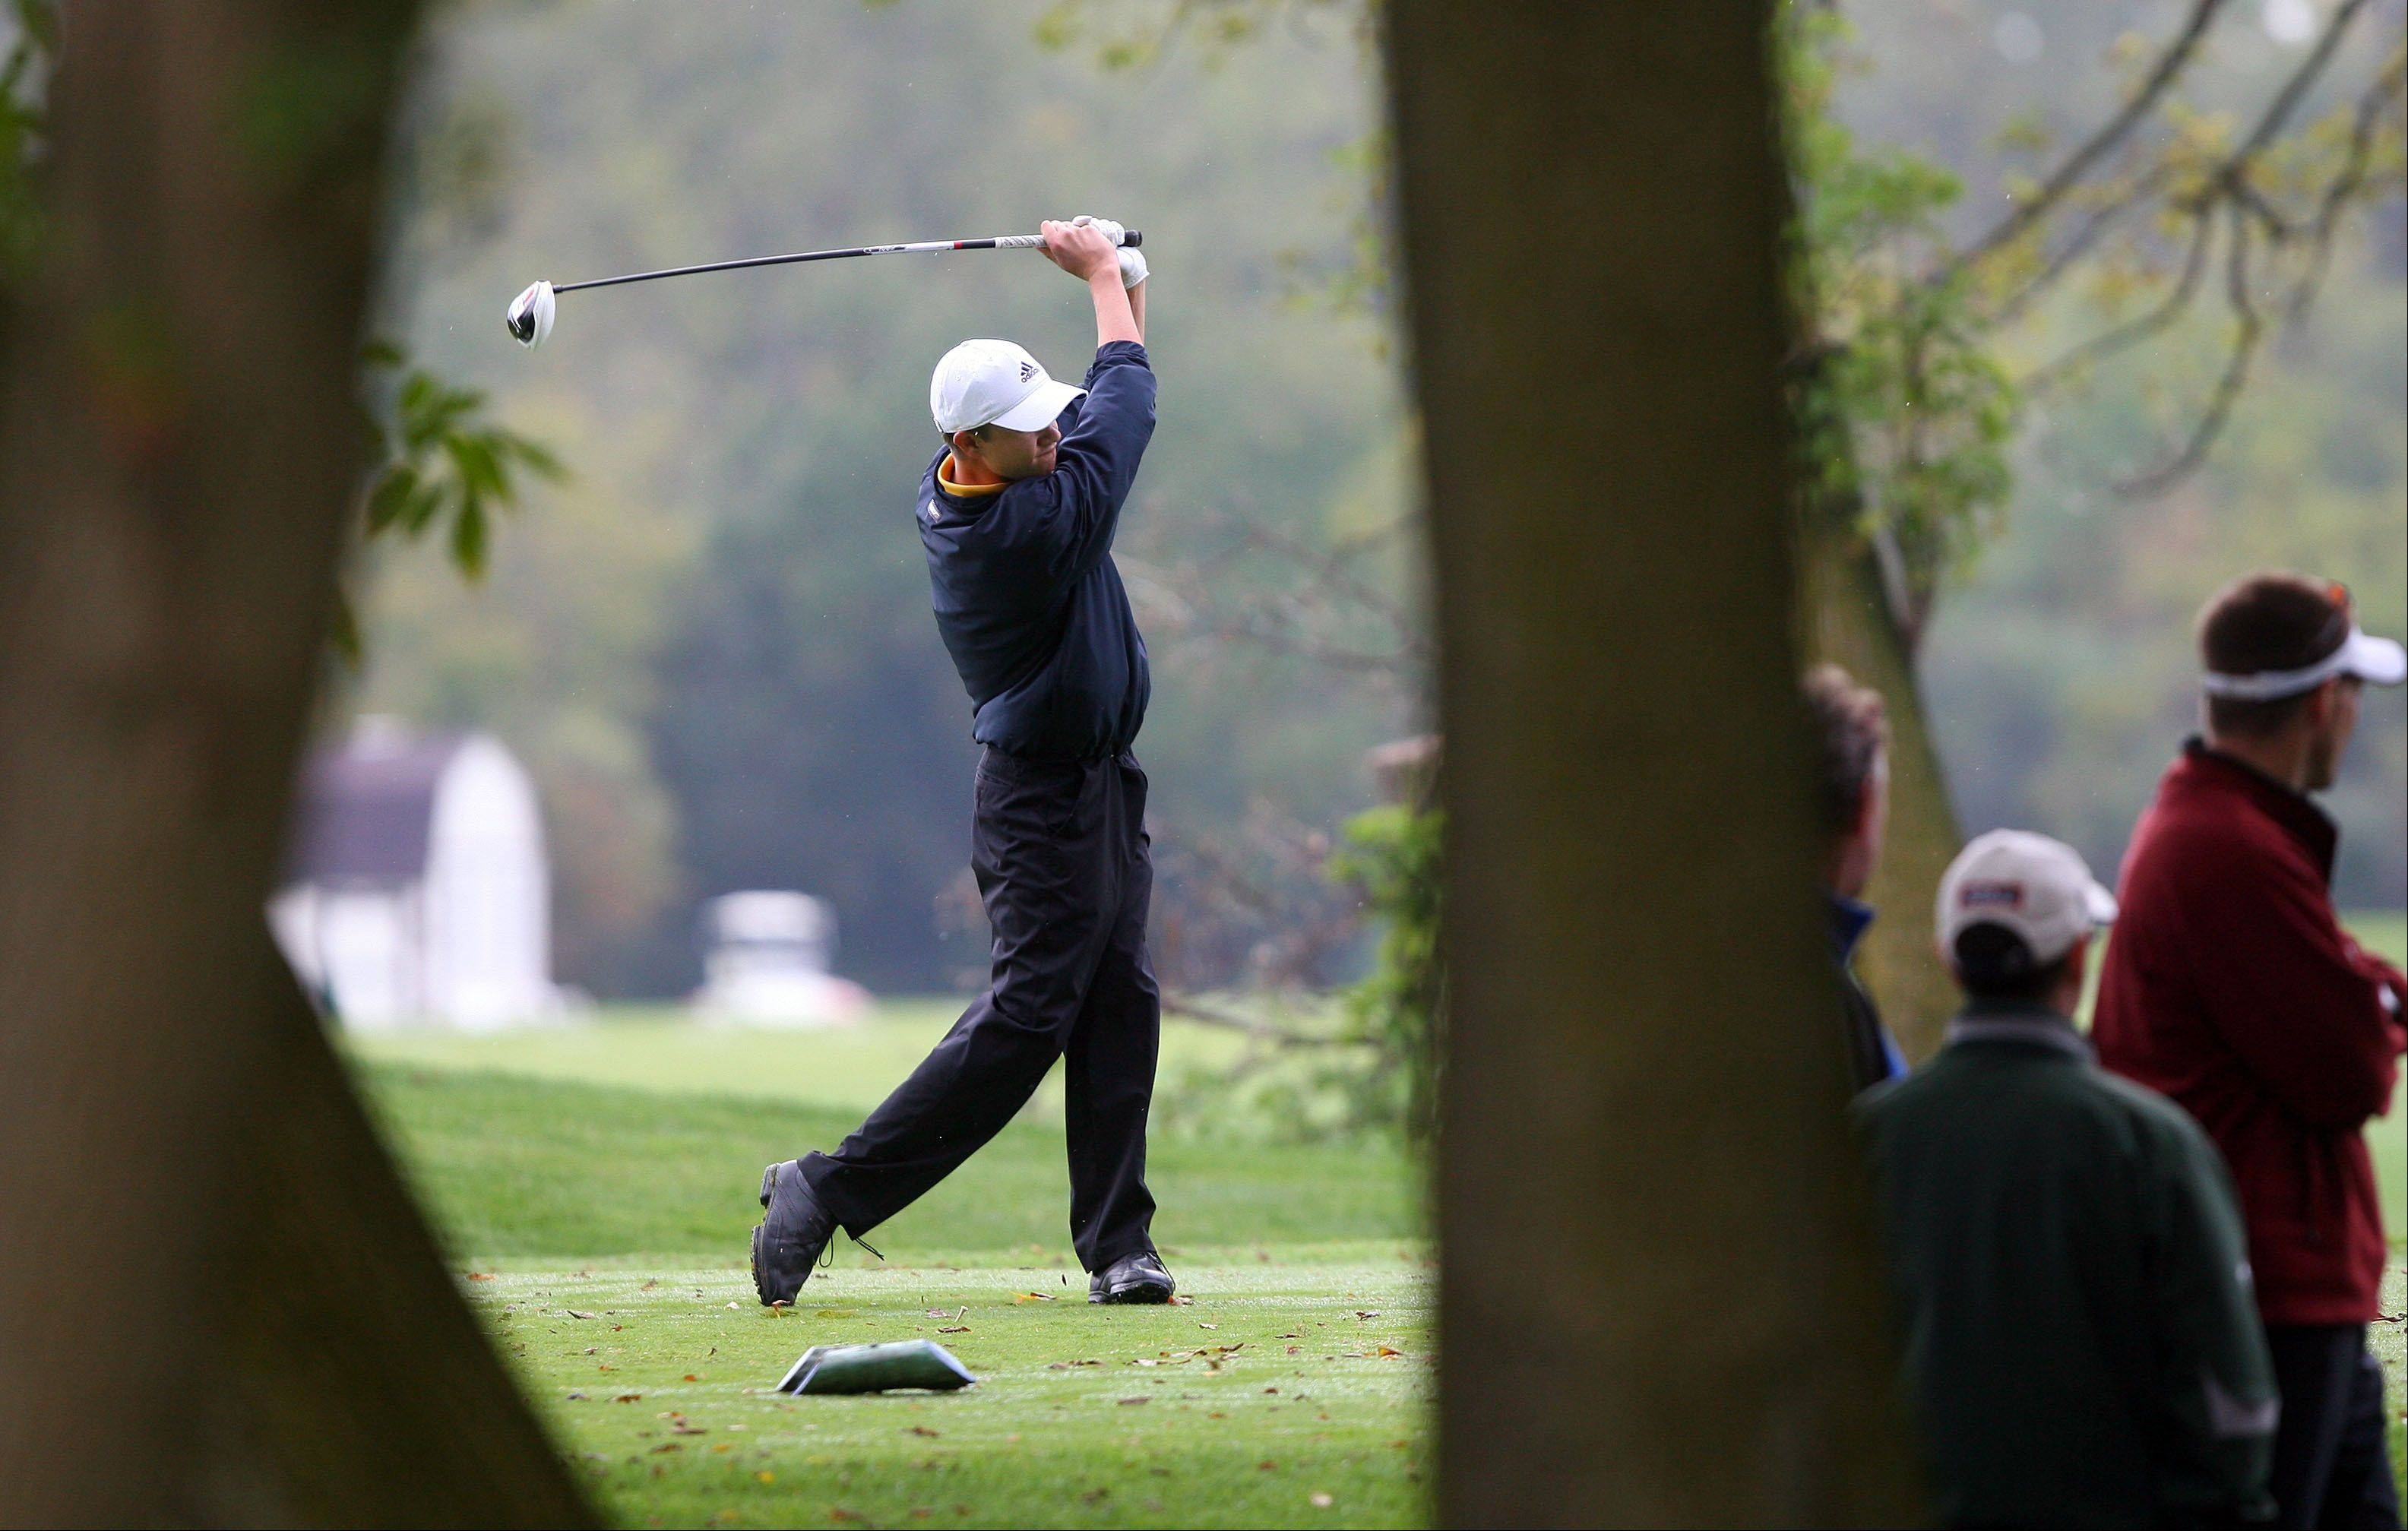 Jacob�s Sean Kozak tees off on the 10th hole during the Fox Valley Conference boys golf meet at Pine Meadow Golf Course in Mundelein on Thursday.